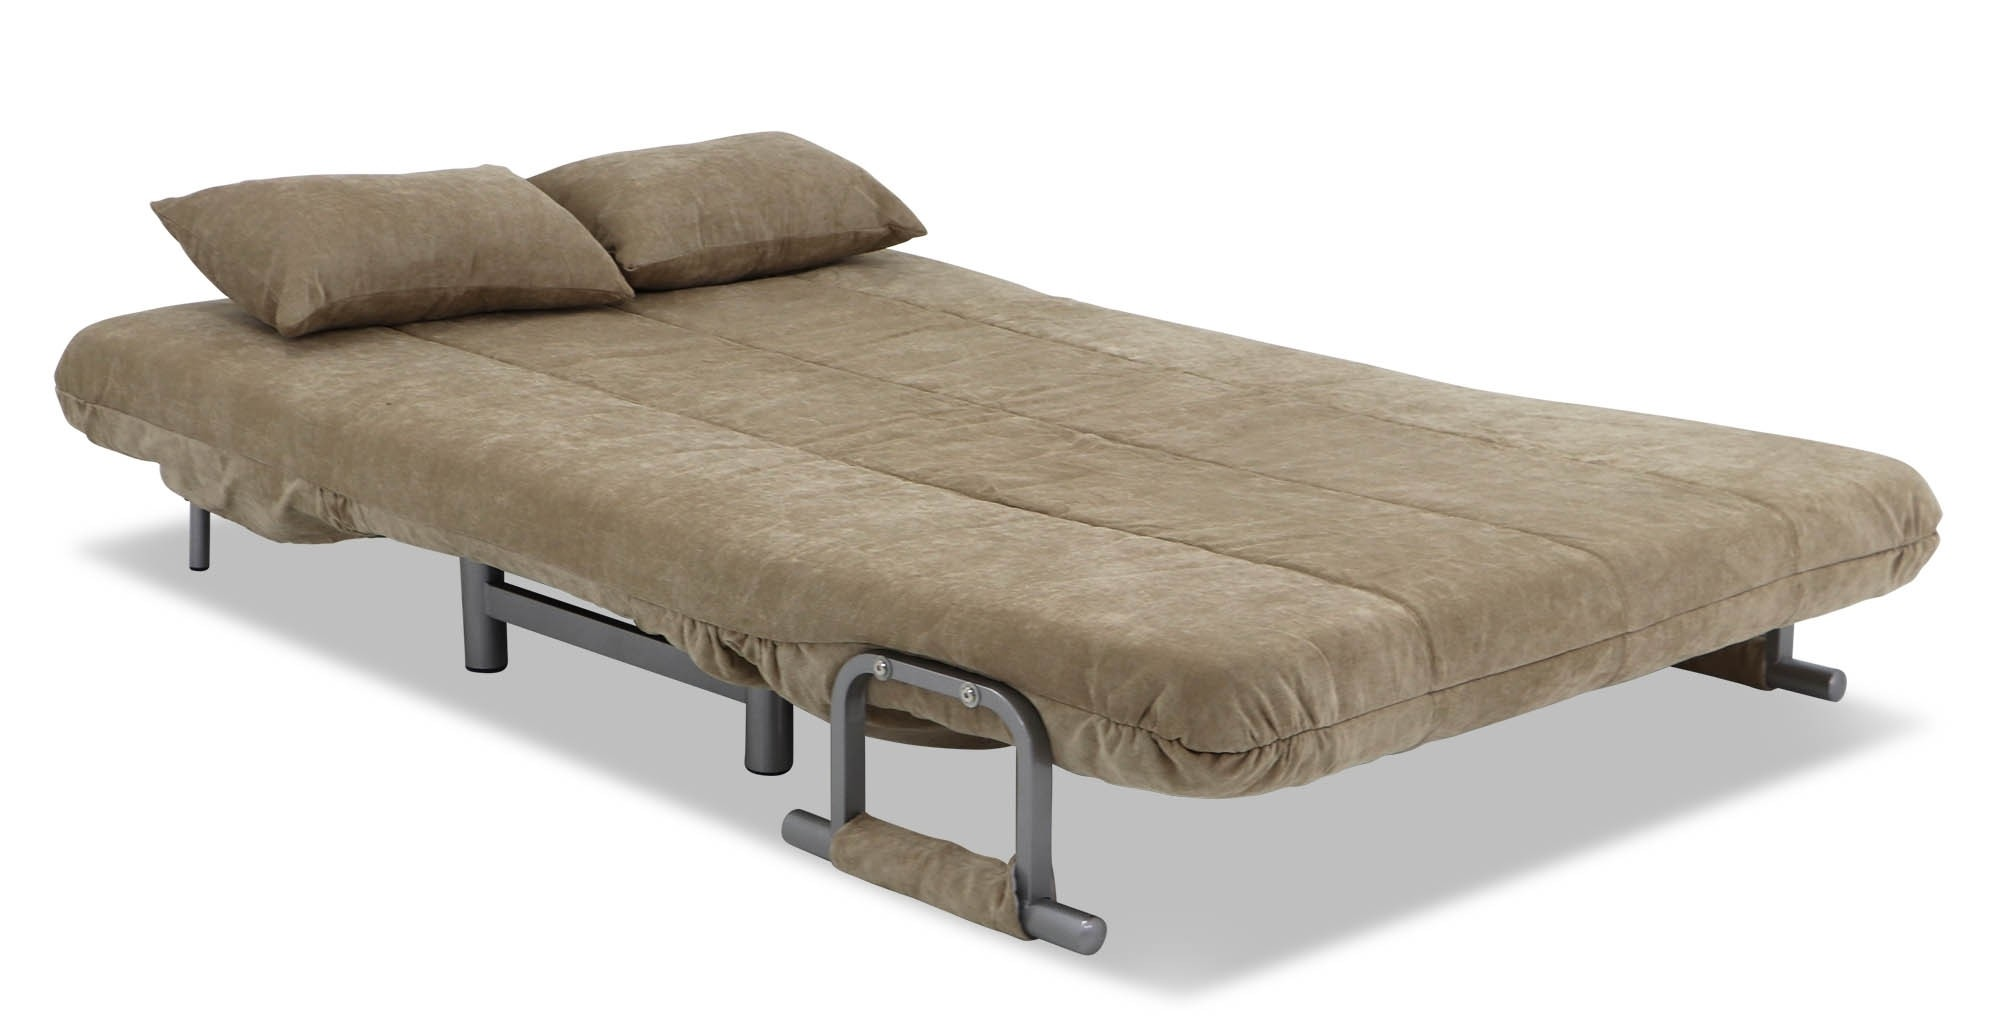 Ruud Sofa Bed Beds Day